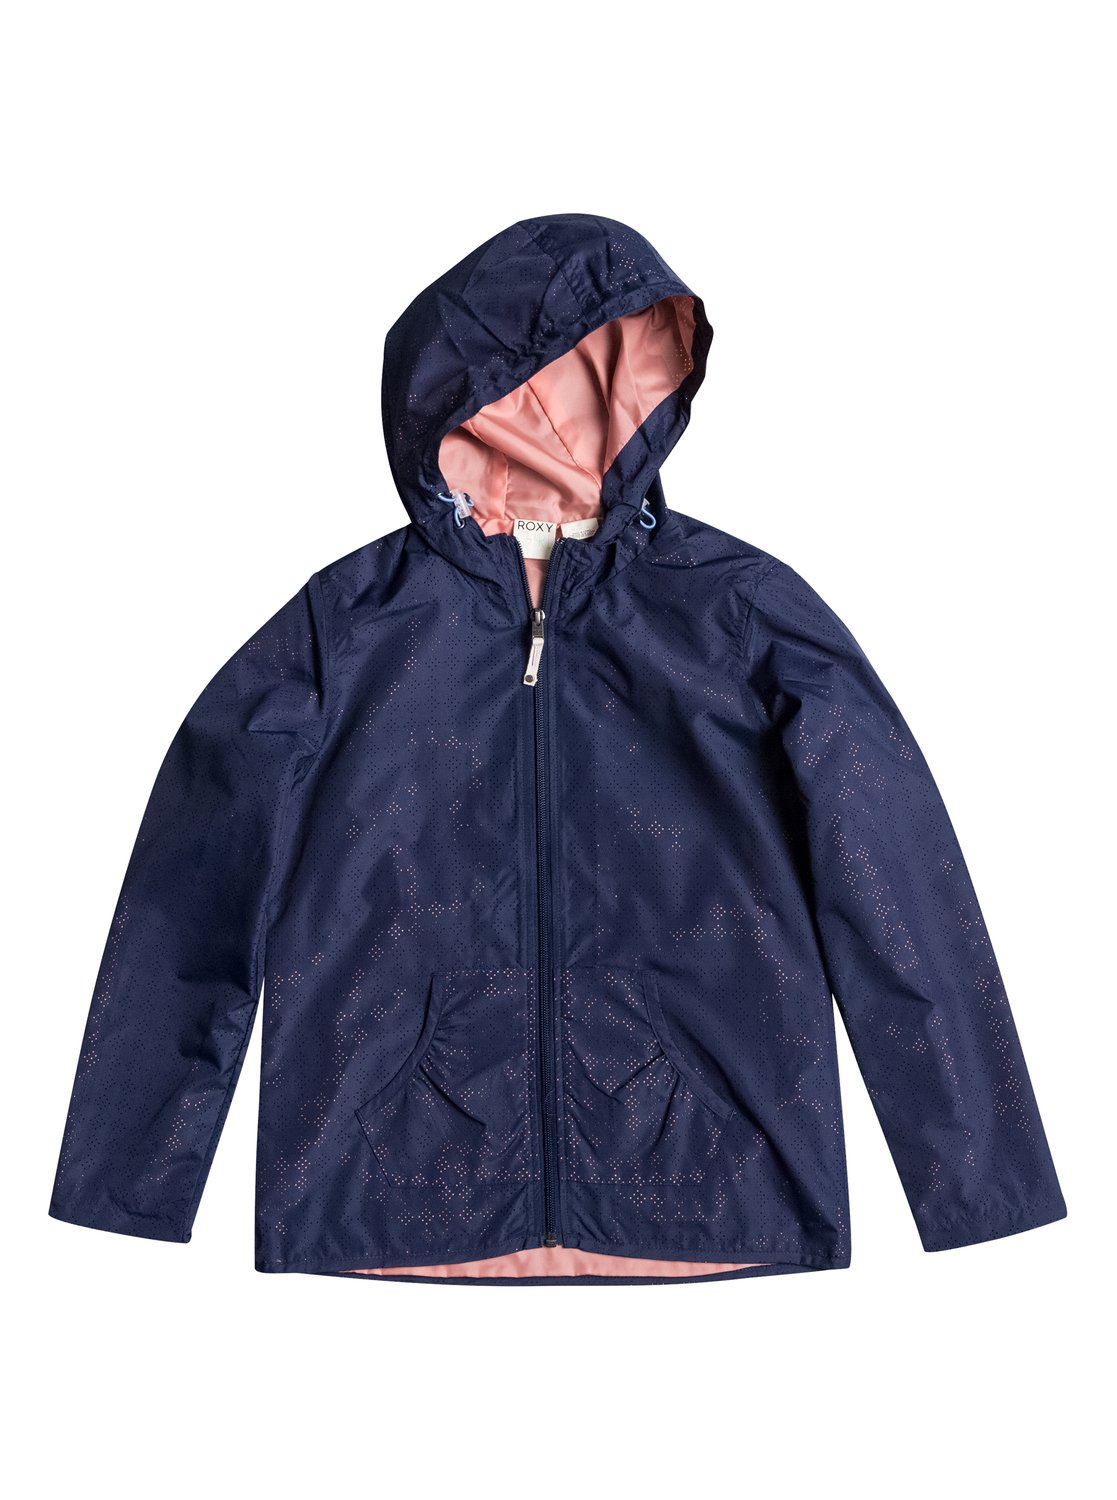 Girl's Trustful Hands Windbreaker